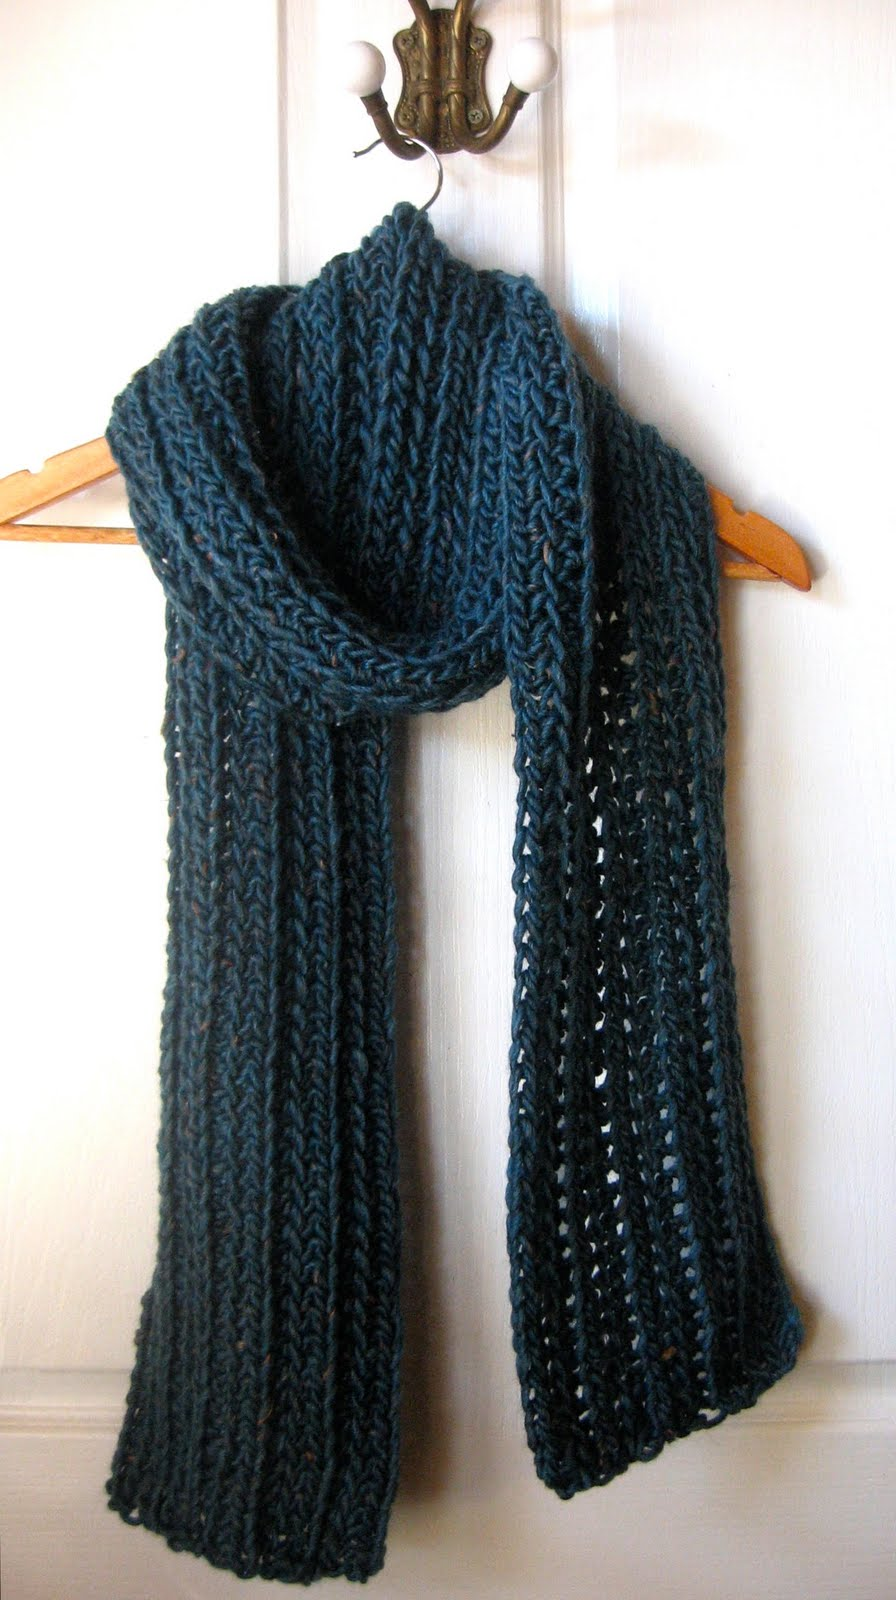 Free Crochet Pattern For Boa Scarf : Crocheting Pattern Crochet Childrens Scarf Patterns Free